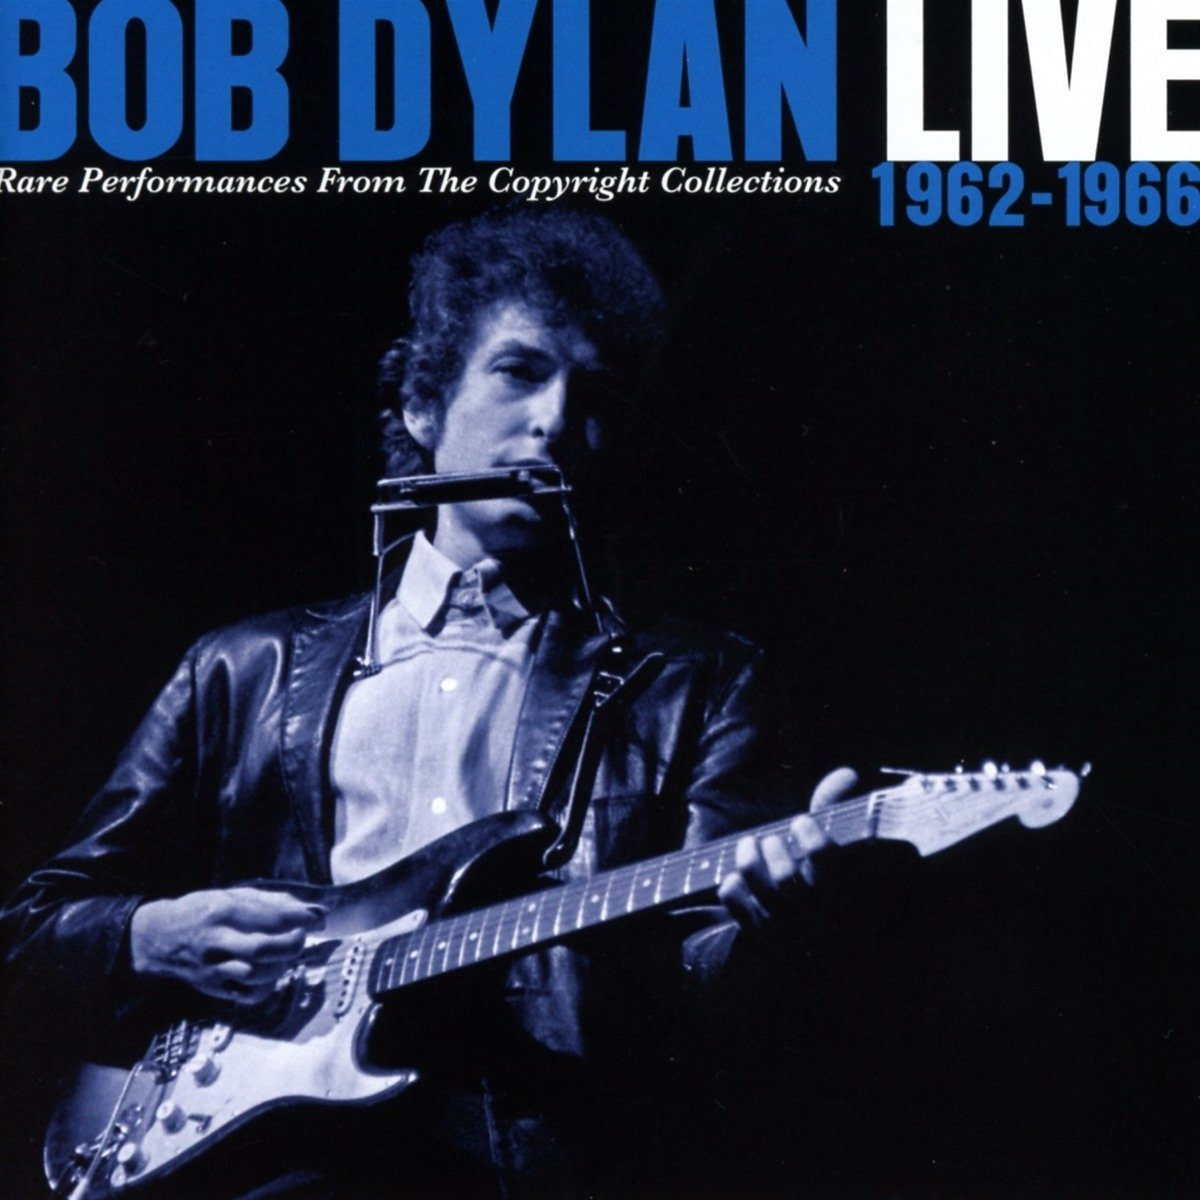 CD : Bob Dylan - Live 1962-1966 Rare Performance From The Copyright Collections (2PC)